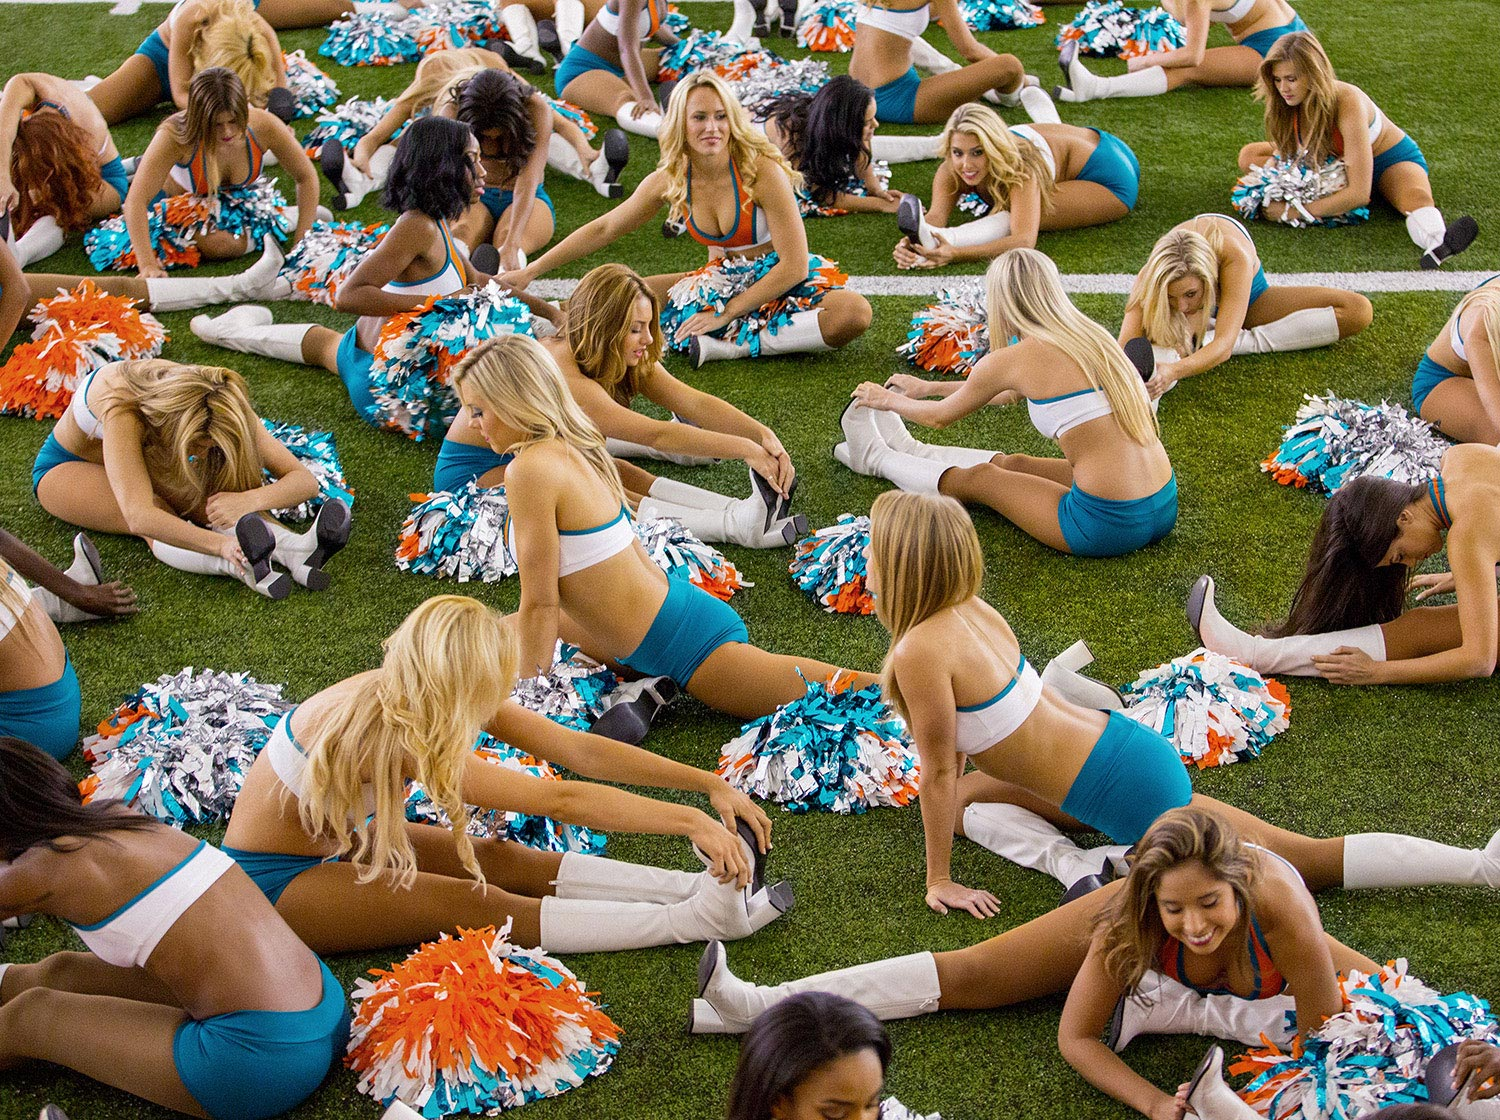 ABBEY_DRUCKER_140820_011_Cheerleaders_DAY2_CARD1_6975